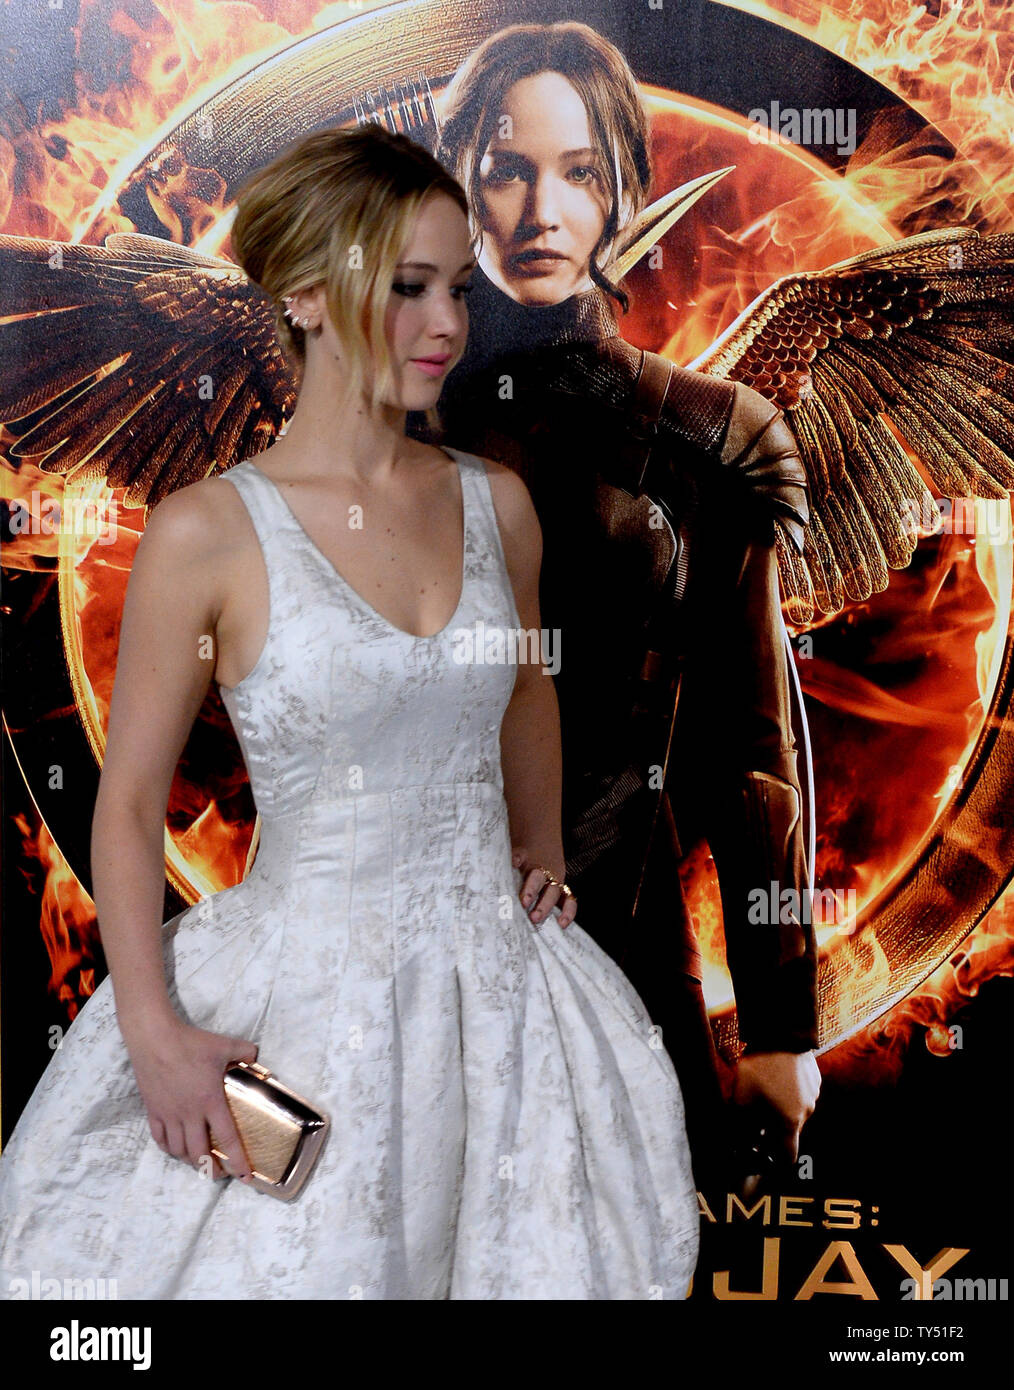 Actress Jennifer Lawrence Attends The Premiere Of The Sci Fi